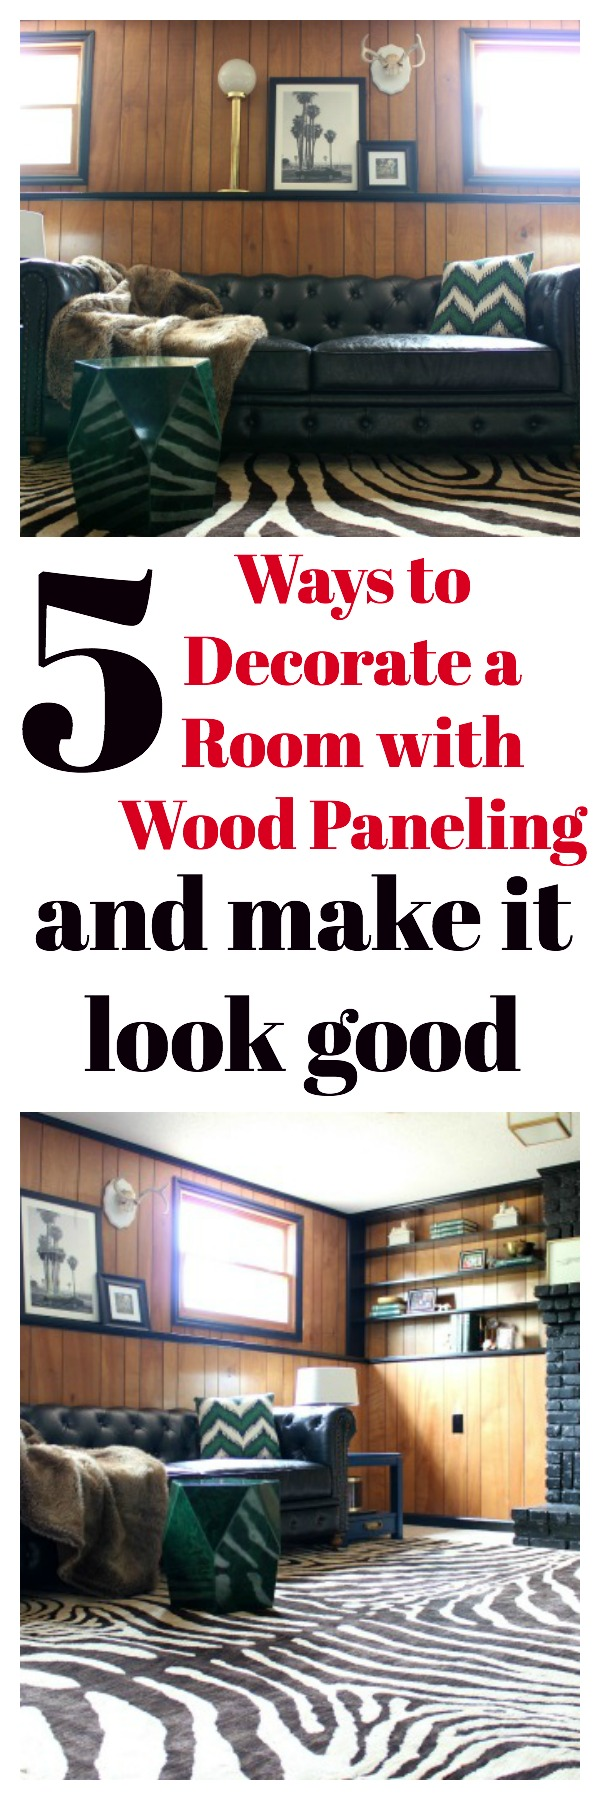 These five ways to decorate a room with wood paneling are really great ideas to save some money and to help you learn to love your wood paneling!